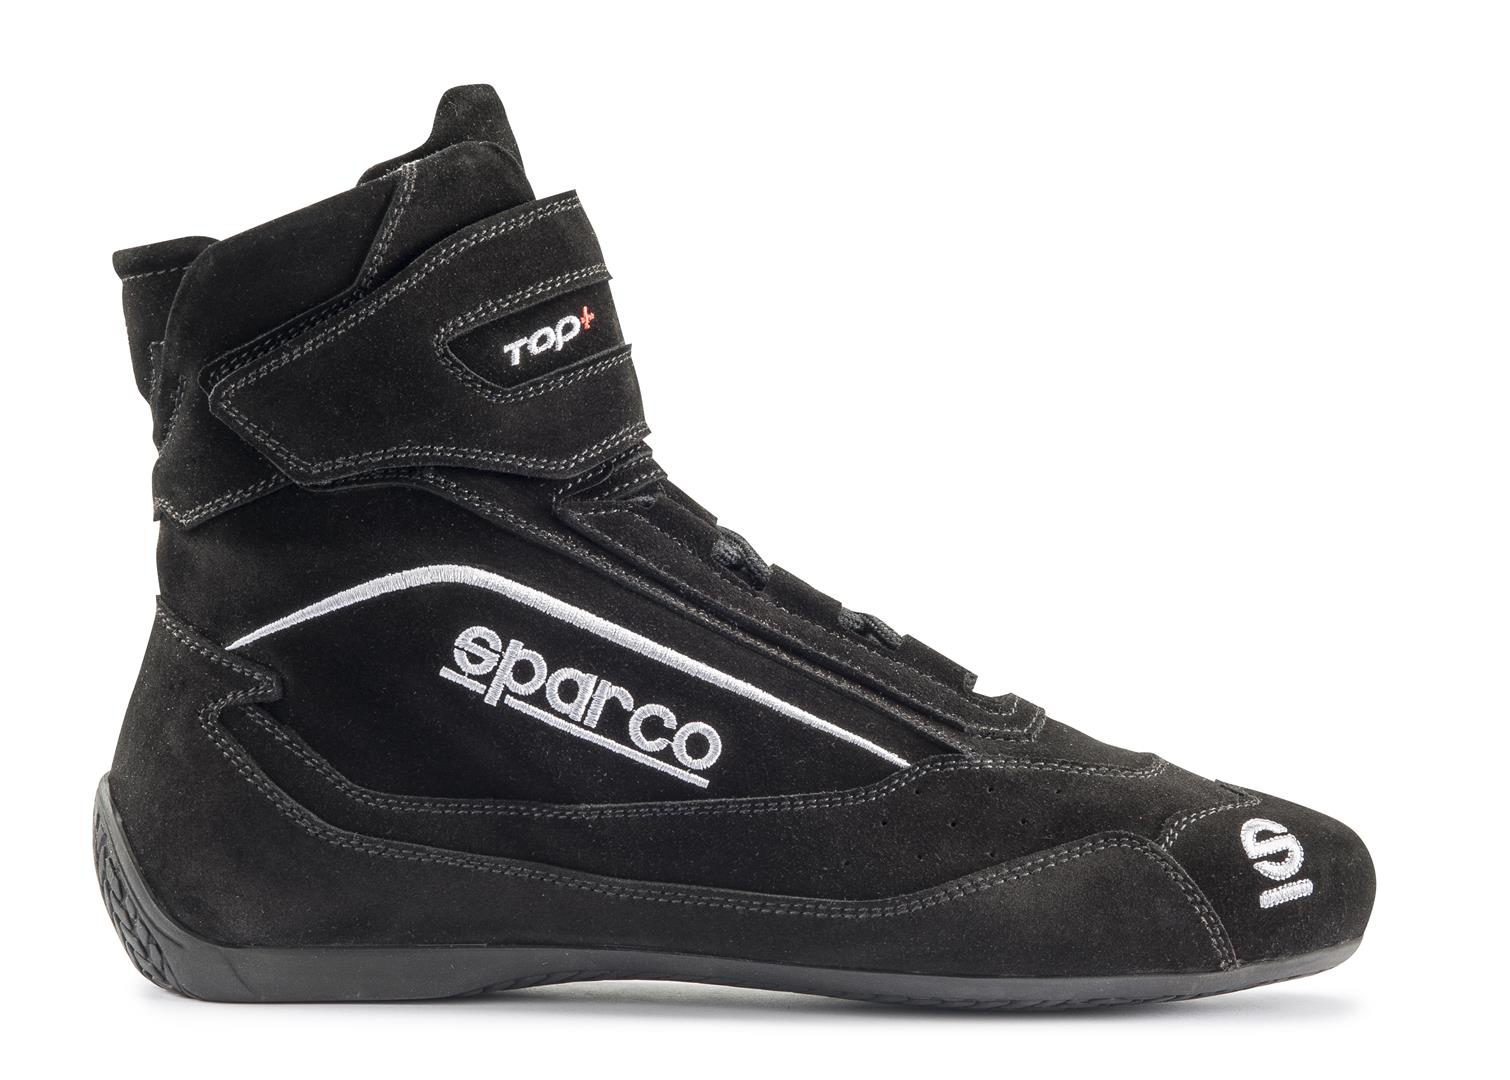 Sparco Black Top+ SH-5 Driving Shoes EU 47 | US 13 - 00121047NR